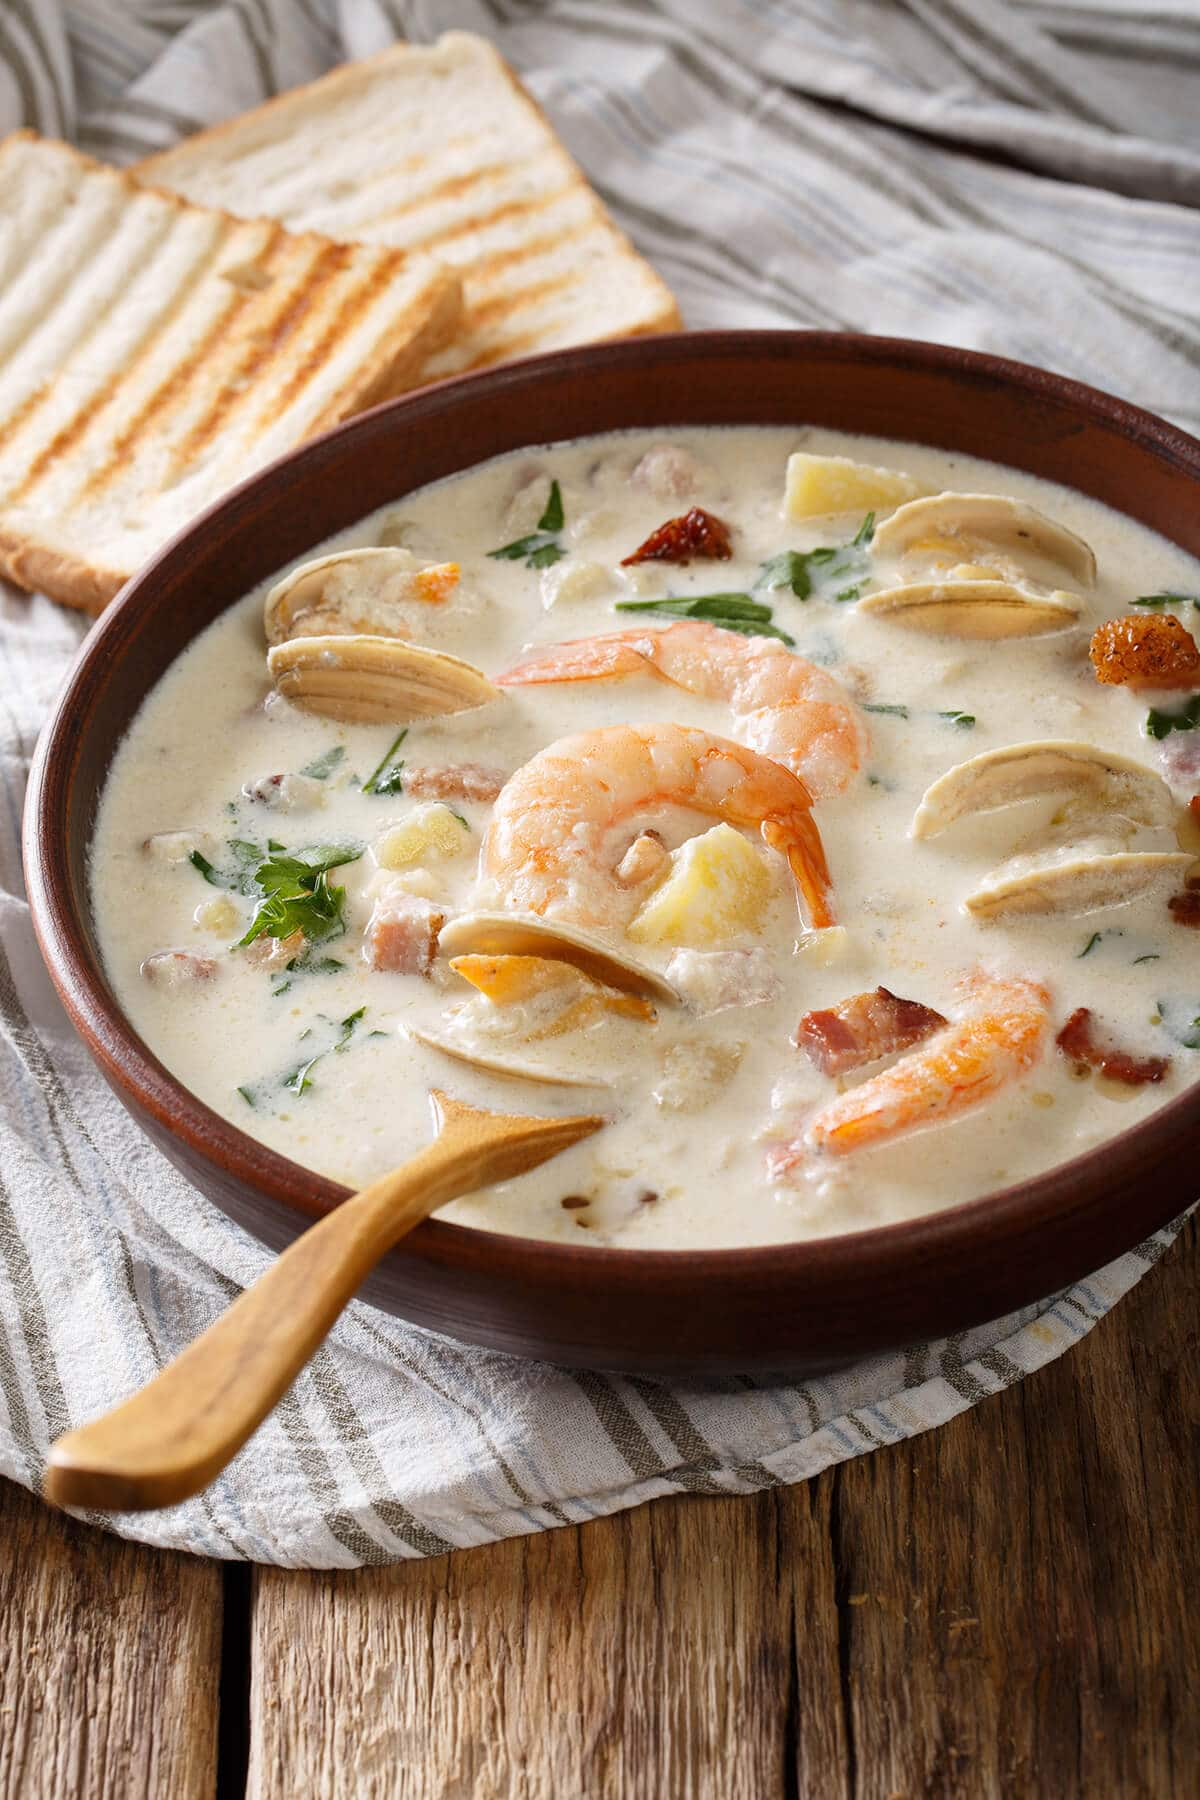 Creamy Seafood Chowder soup with shrimp & mussels. Wooden spoon and toasty bread on the side